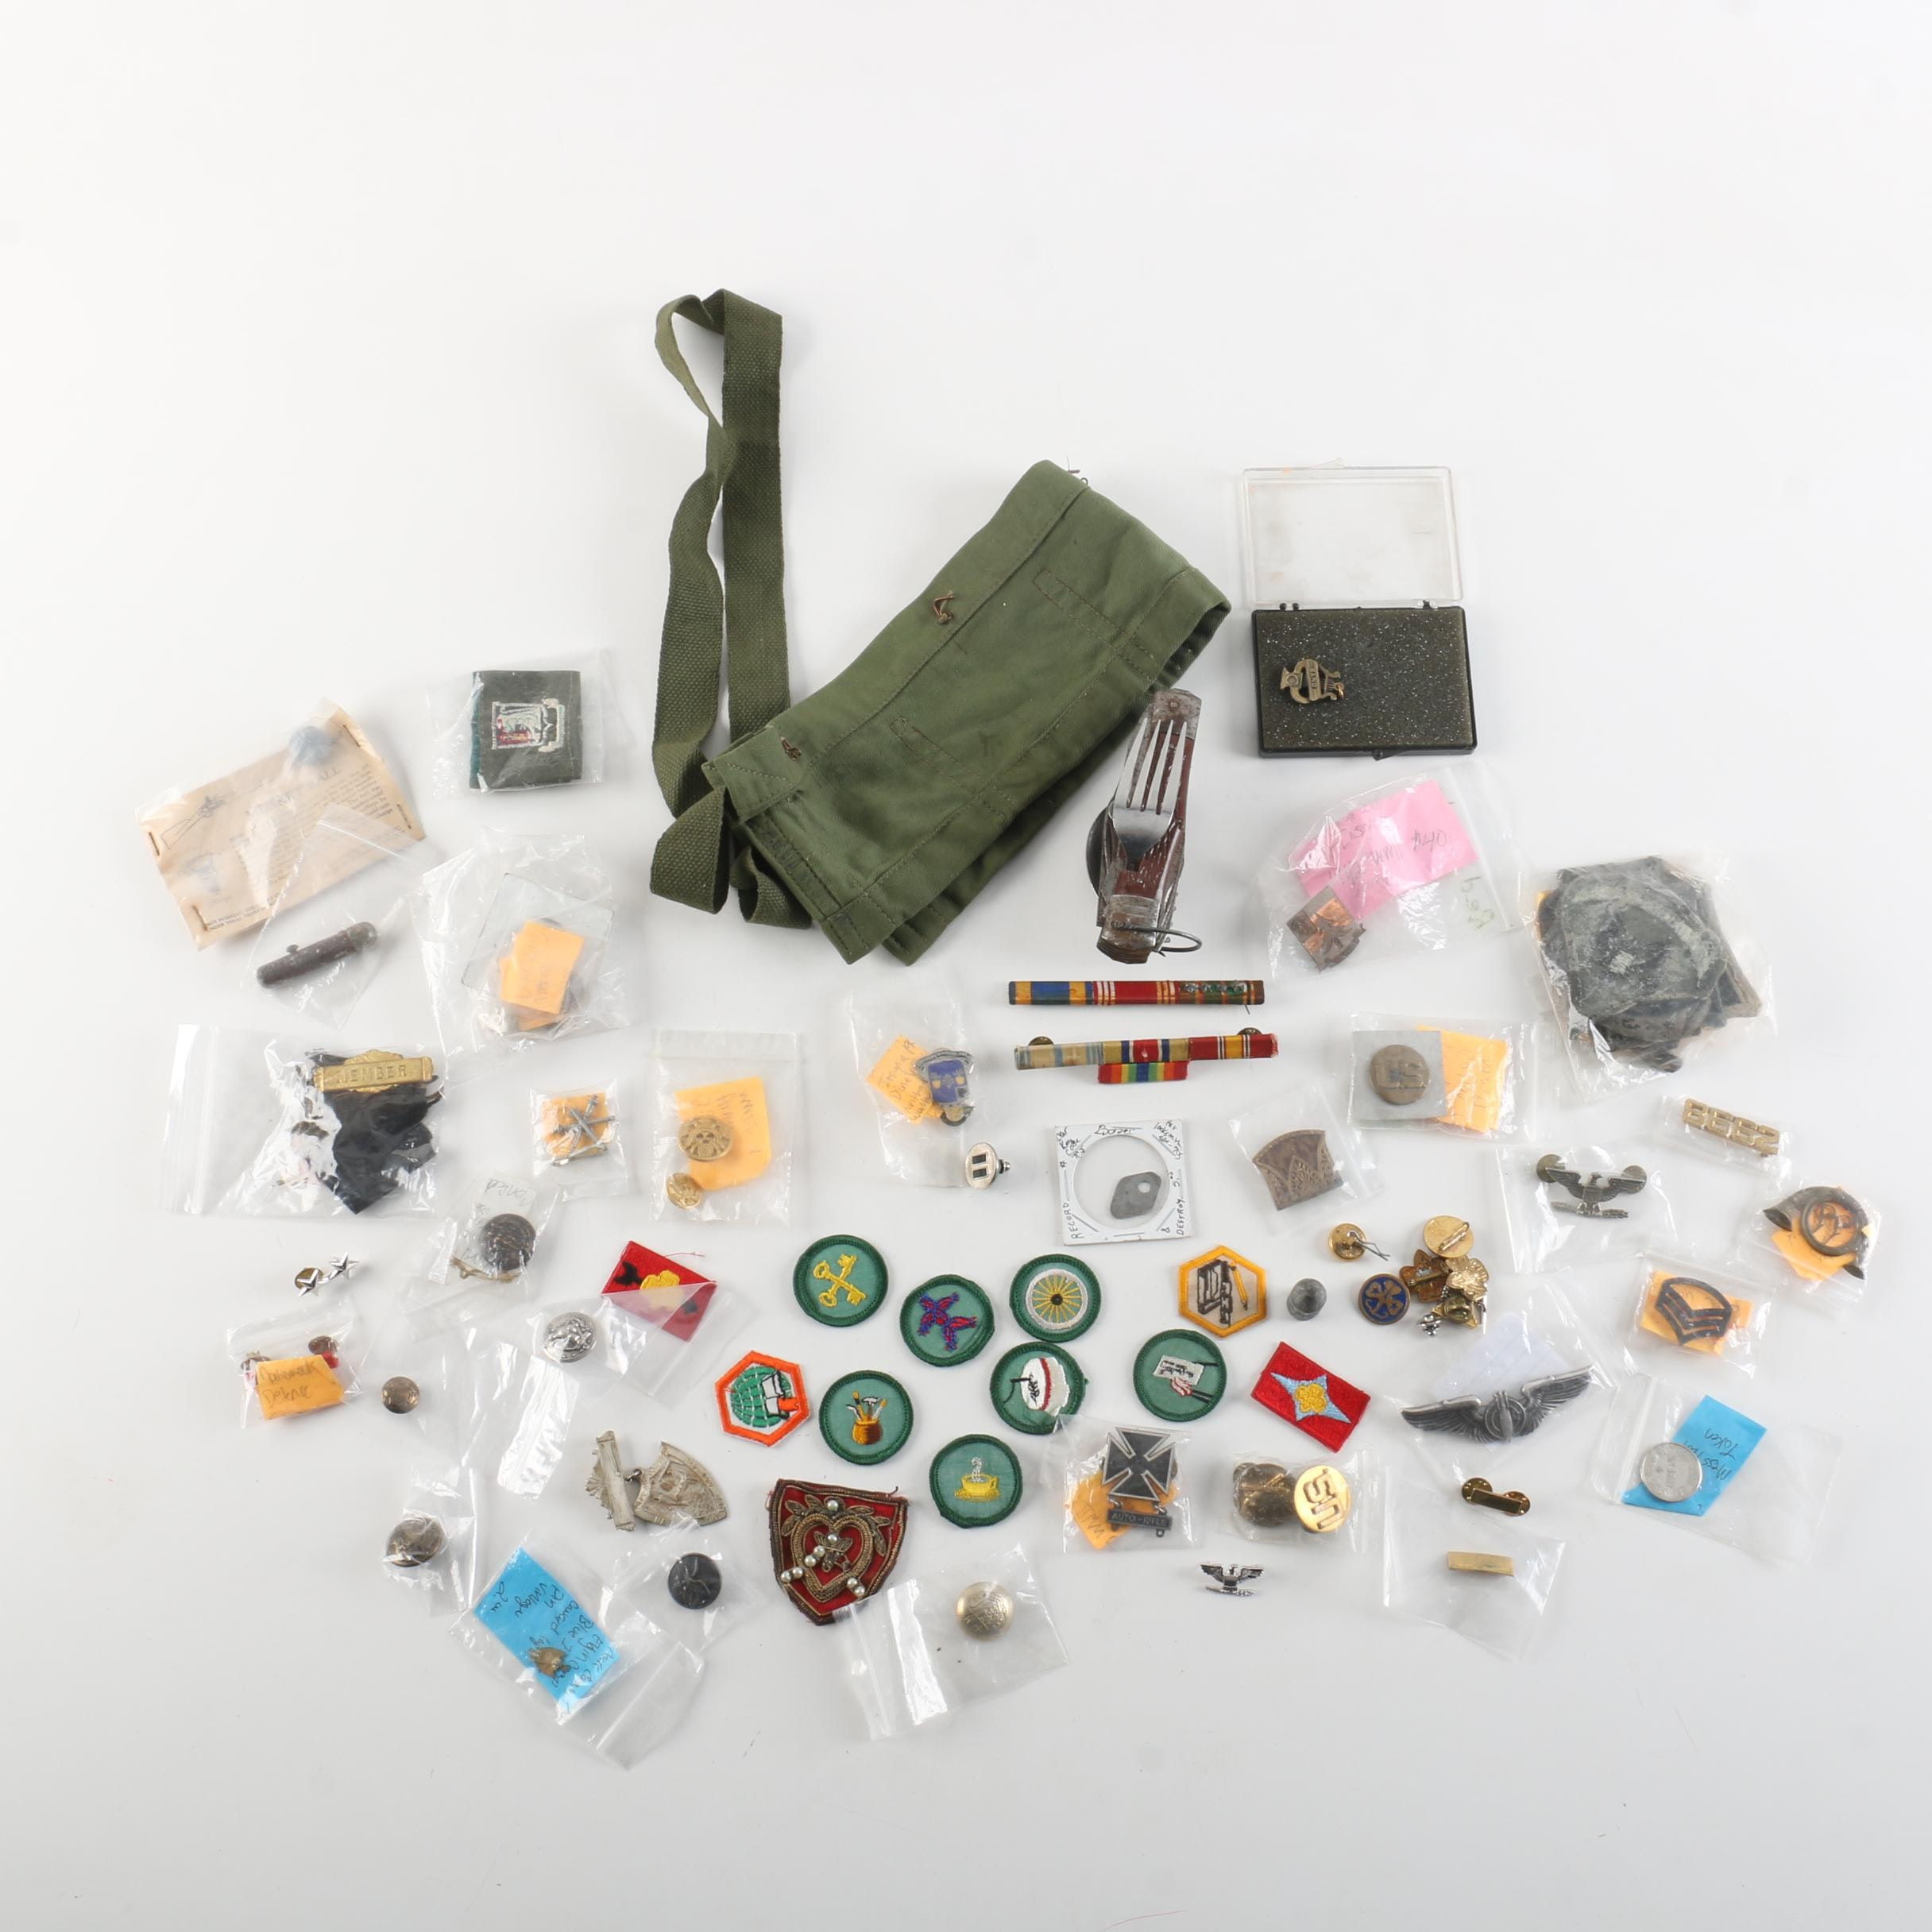 Boy Scout and Military Pins and Patches